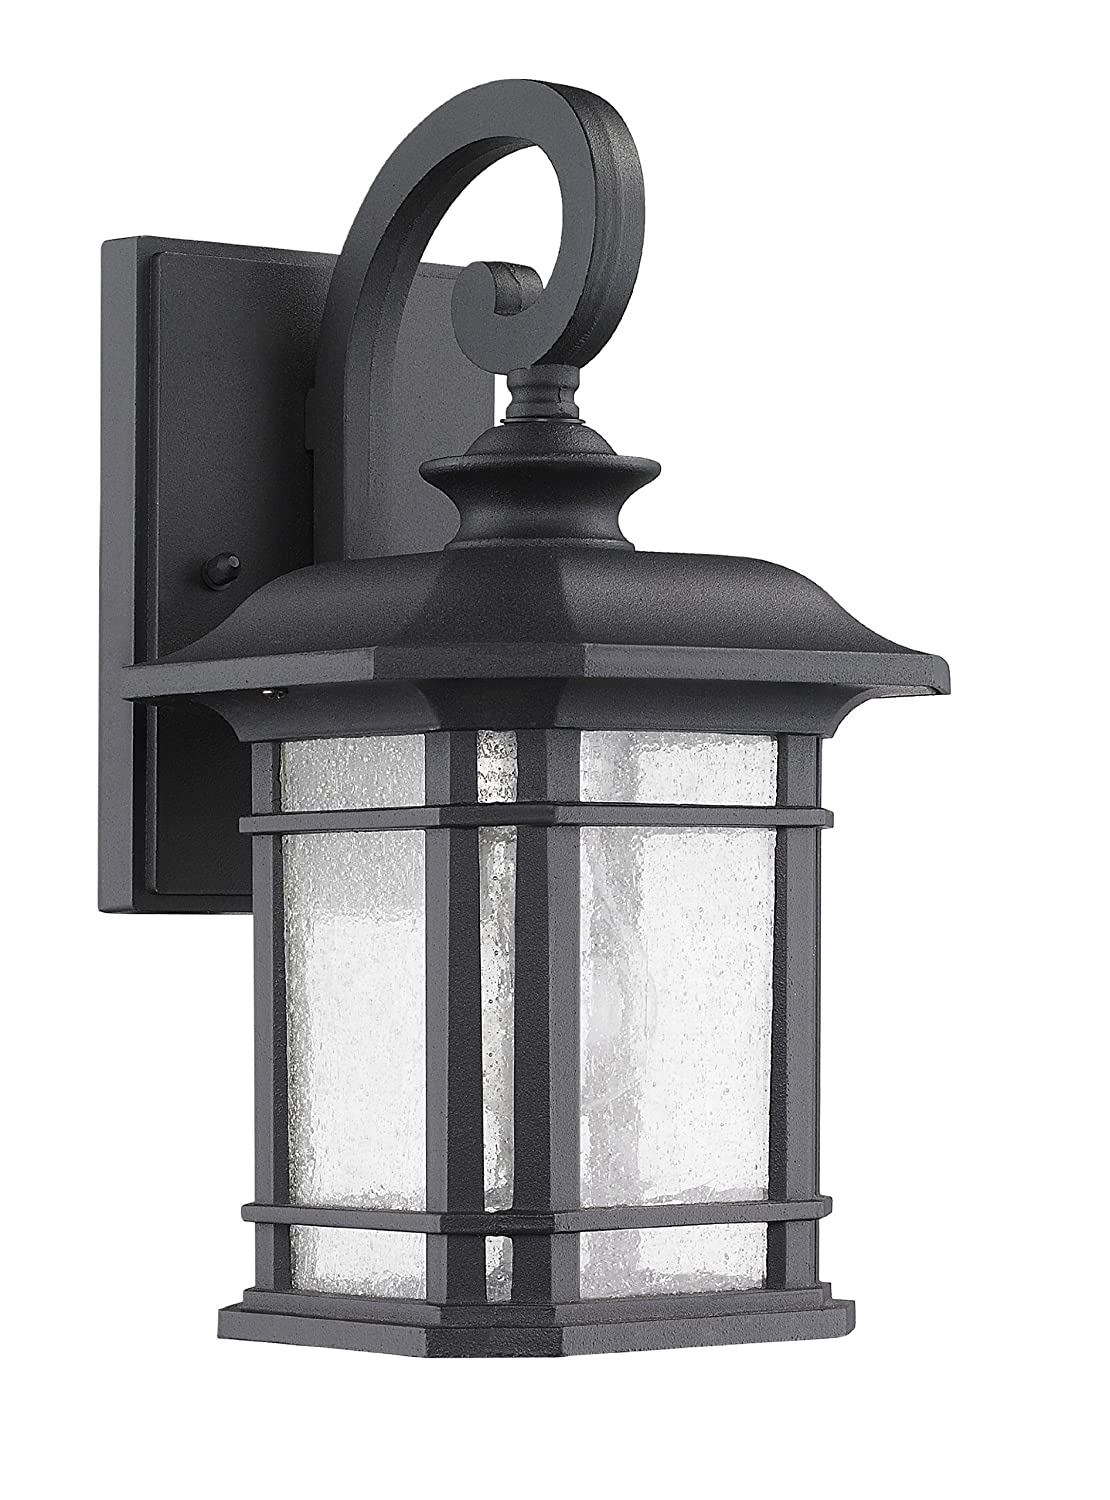 Chloe Lighting Ch22021bk17 Od1 Franklin Transitional 1 Light Black Outdoor Wall Sconce 17 Height Home Electric Com